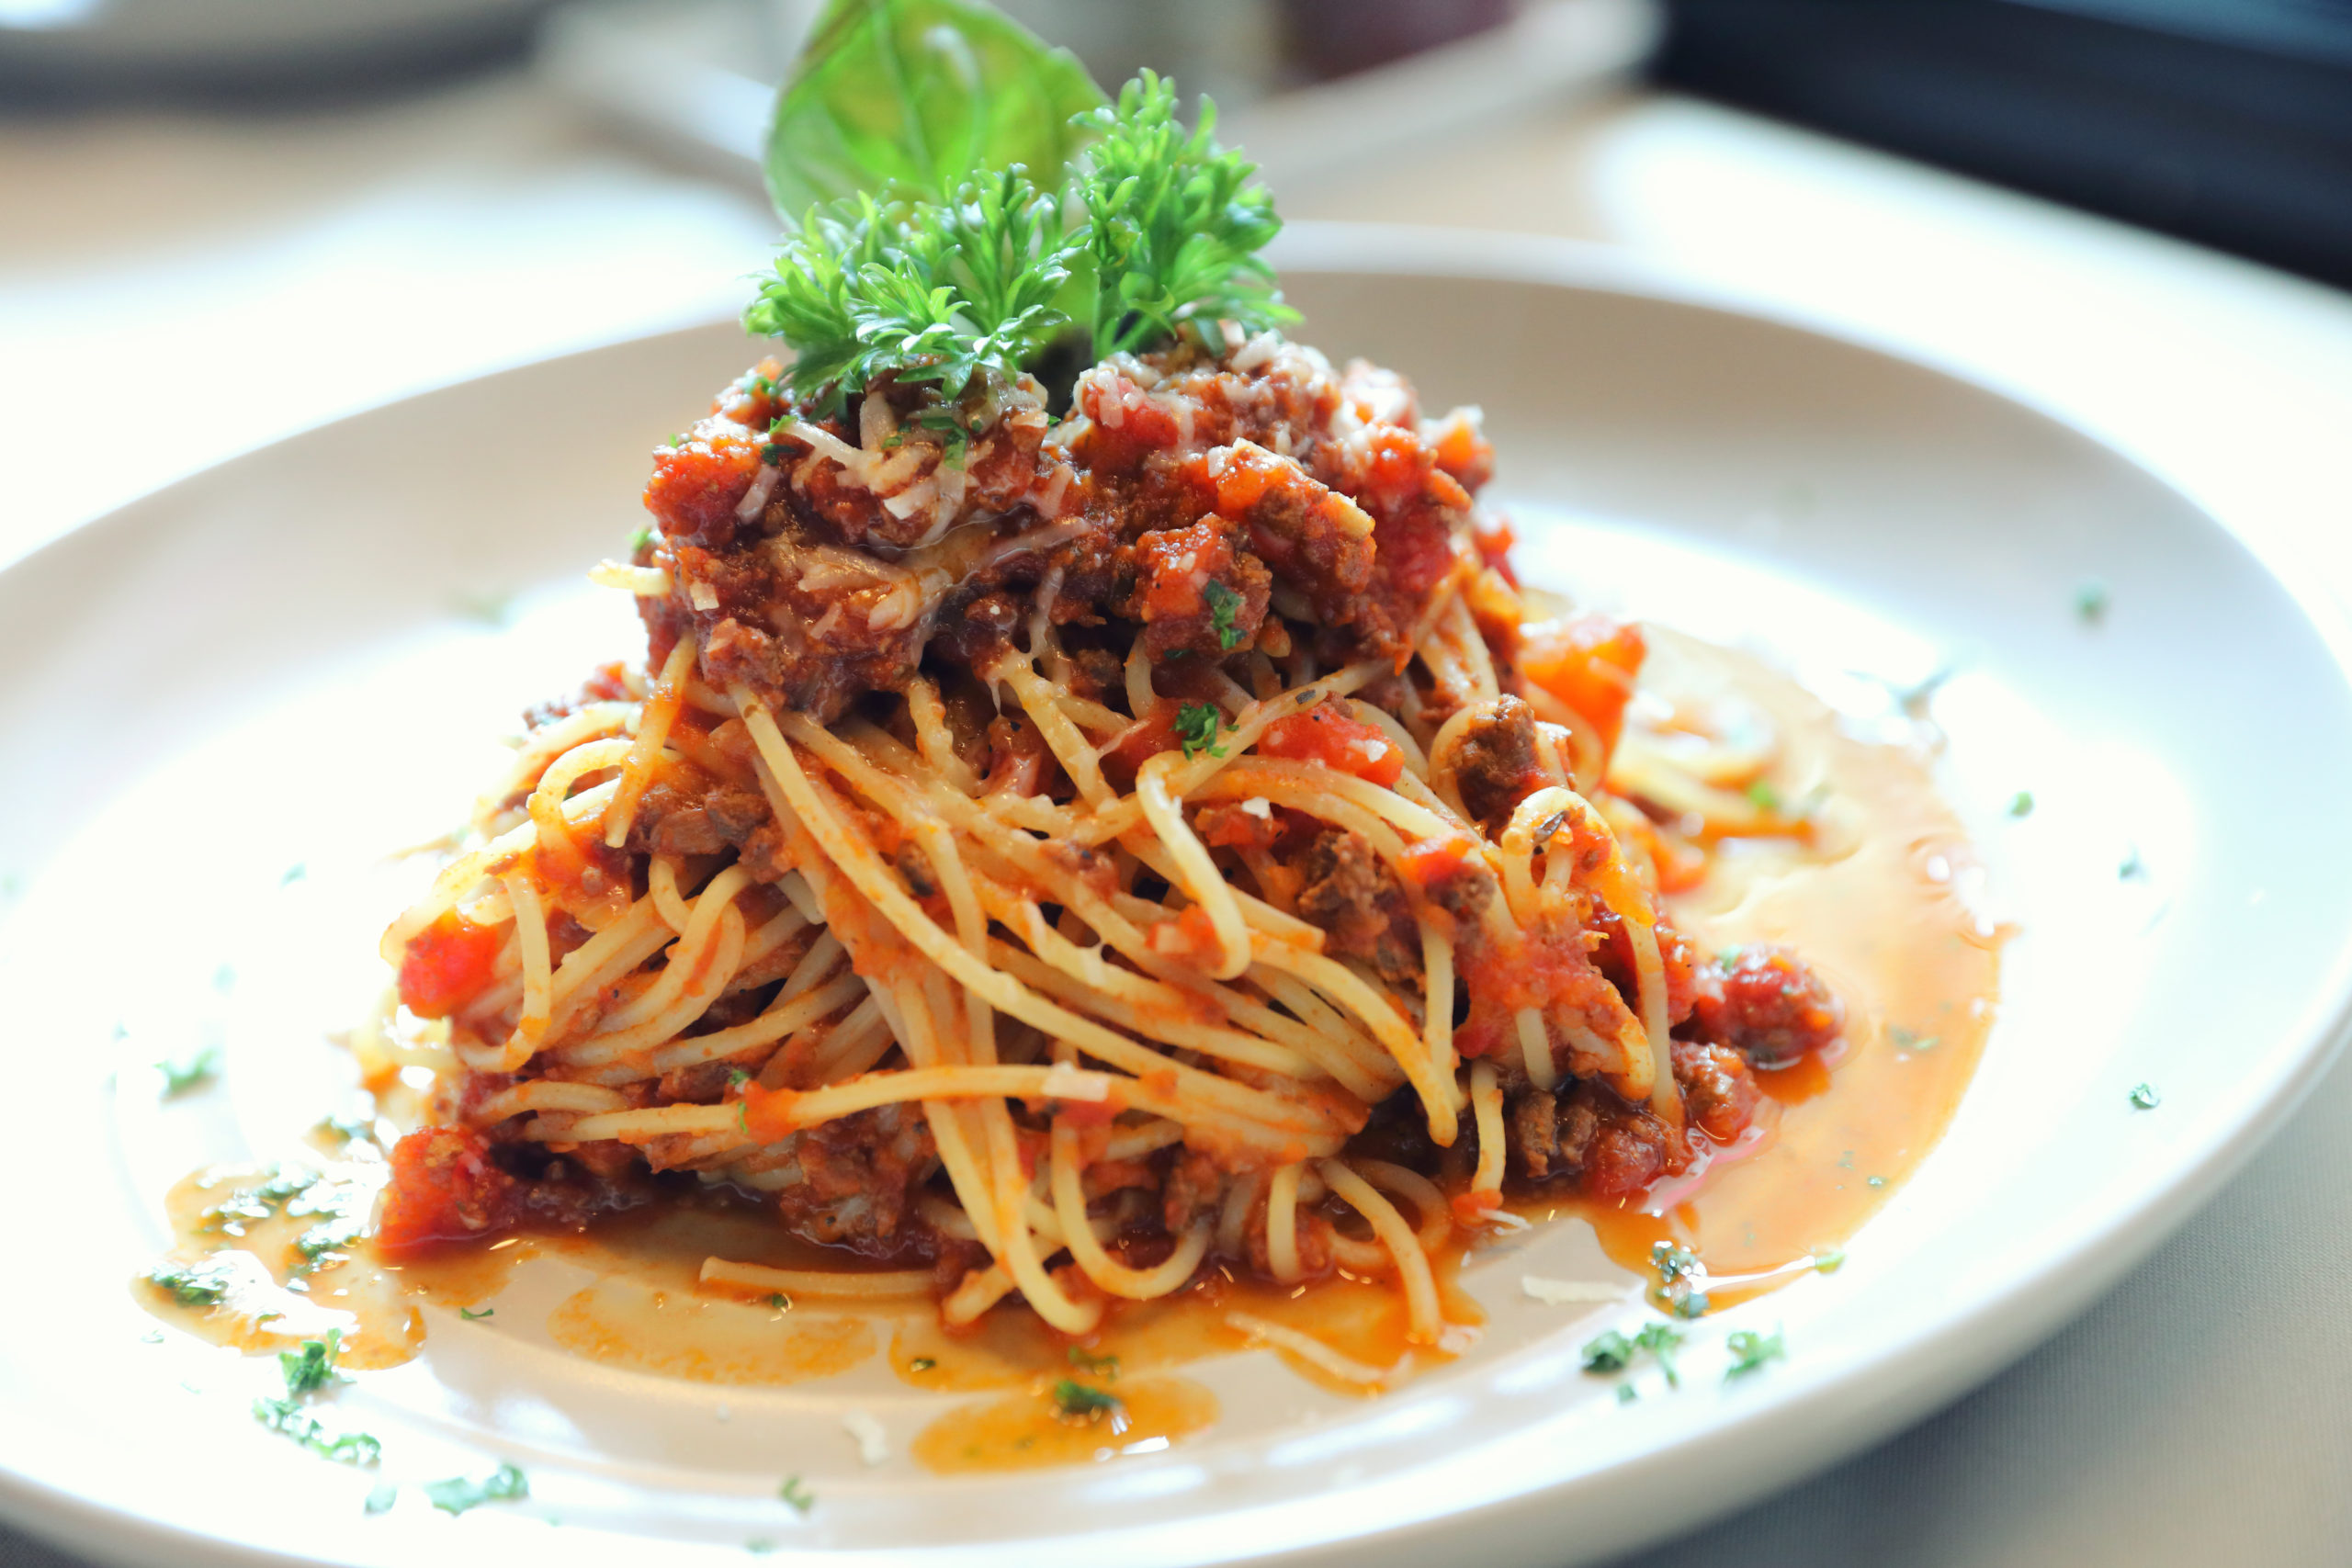 A plate of spaghetti with meat sauce.